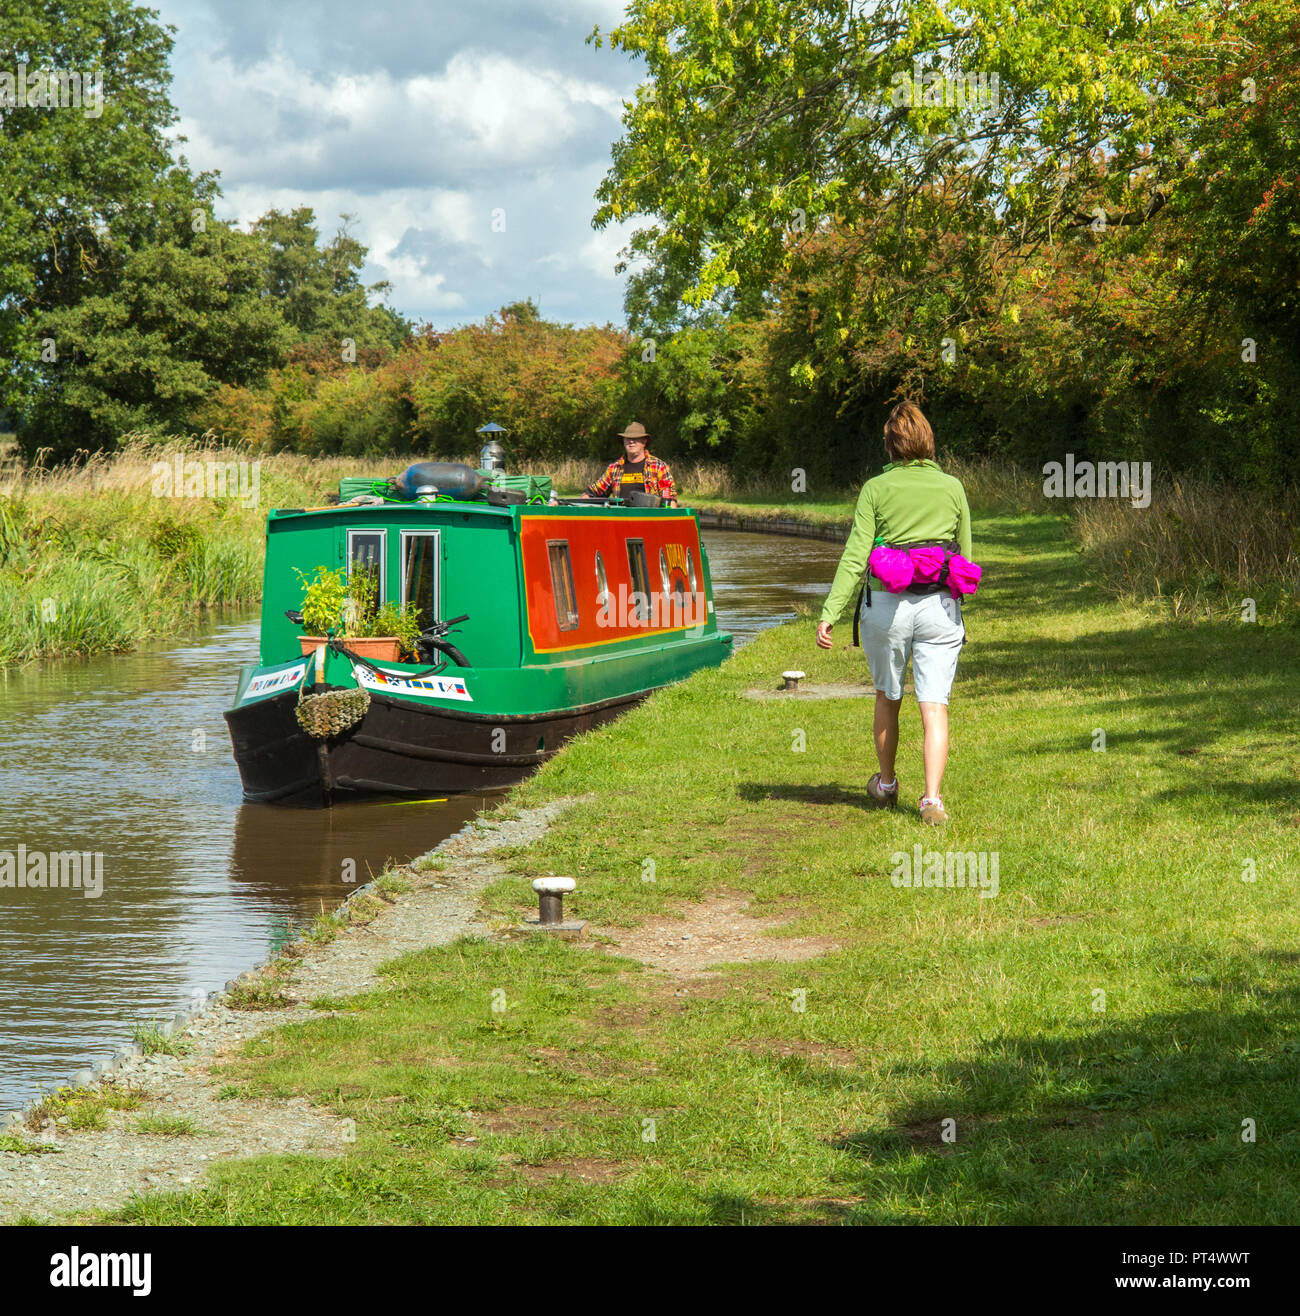 Woman walking along the towpath of the Shropshire union canal with a narrowboat passing near Wrenbury Cheshire England UK - Stock Image